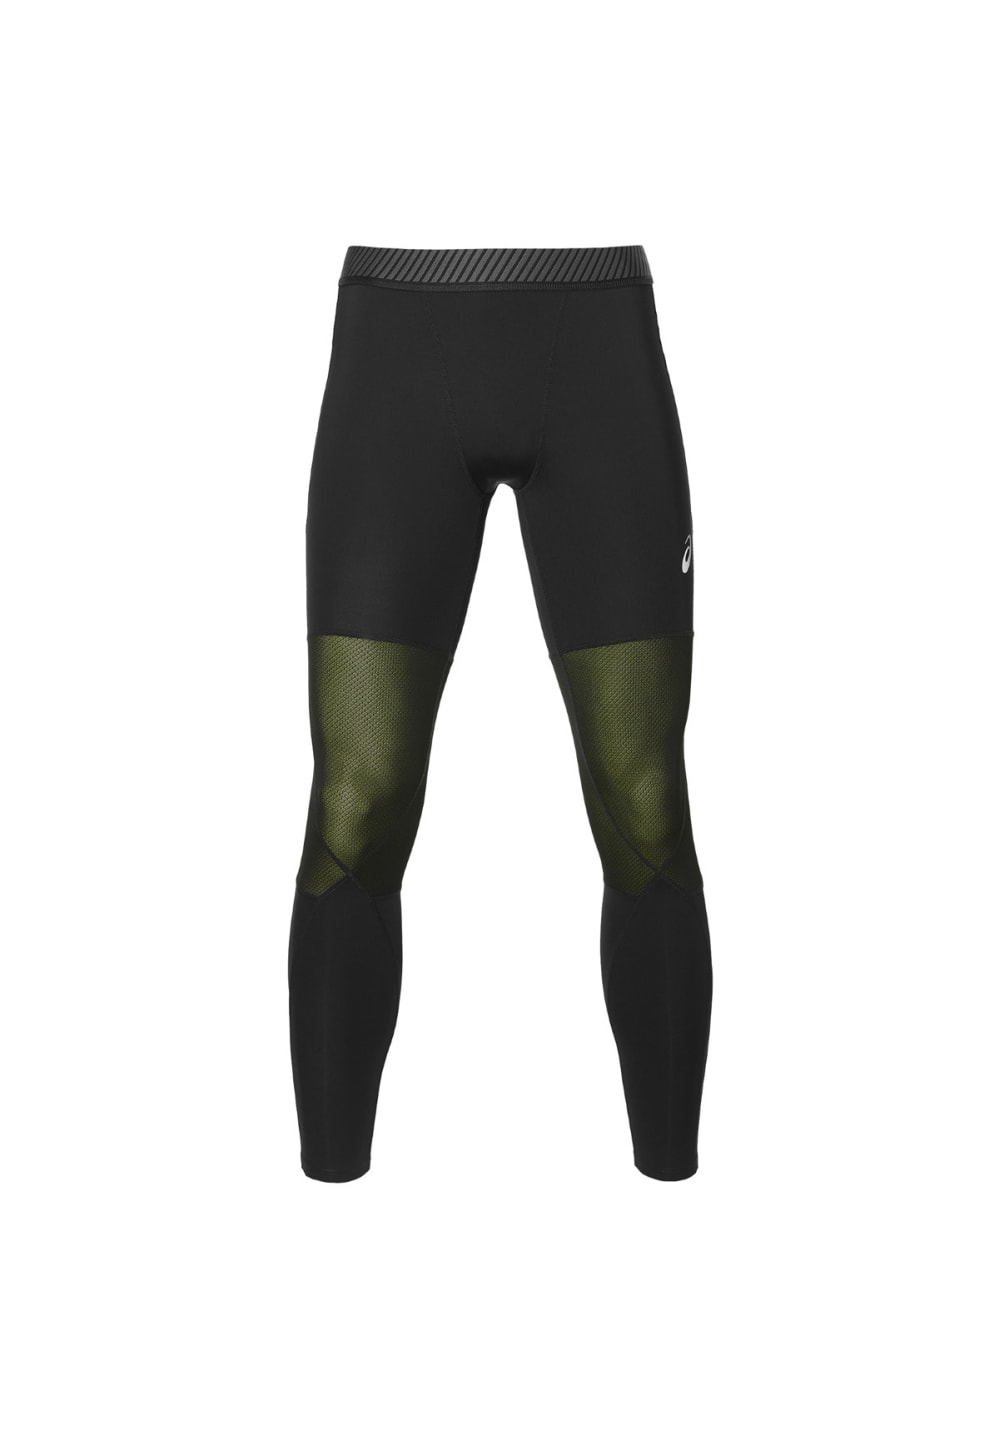 09baef87f6 ASICS Base Layer Long Tight - Running trousers for Men - Black